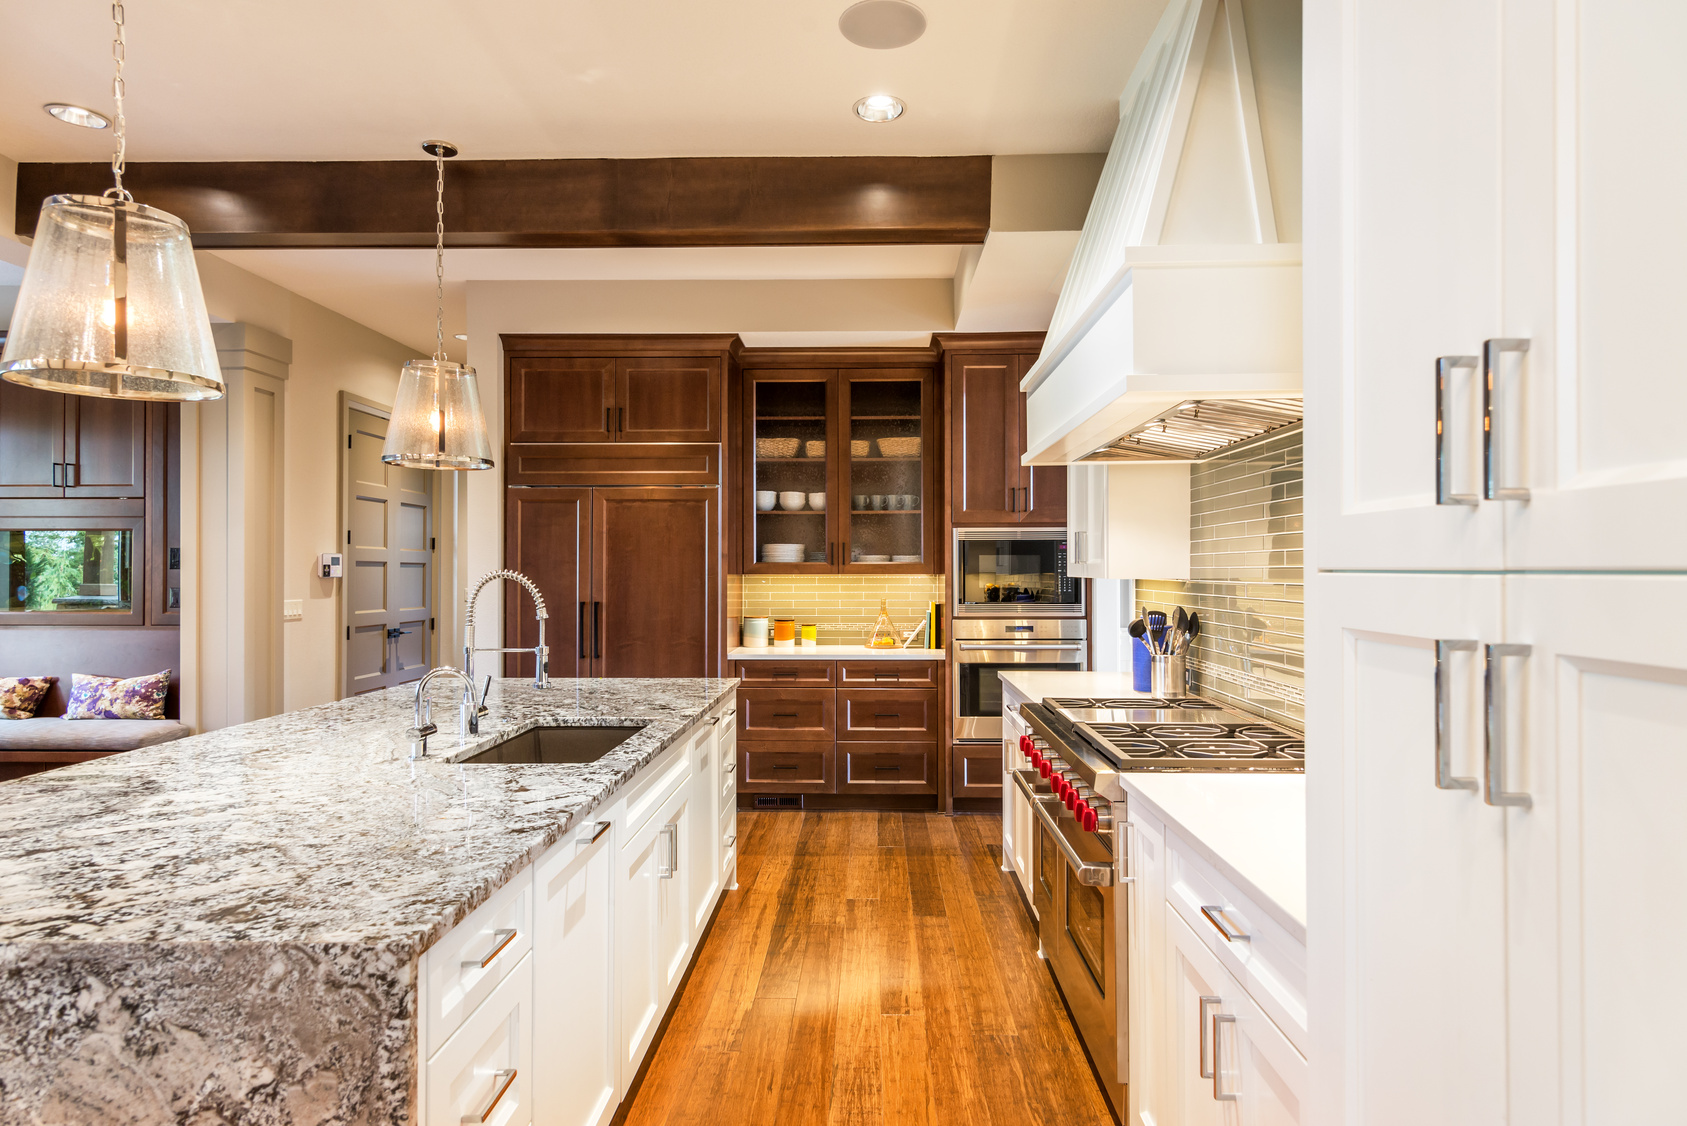 Essential Design Tips For French Provincial Kitchens Dan330